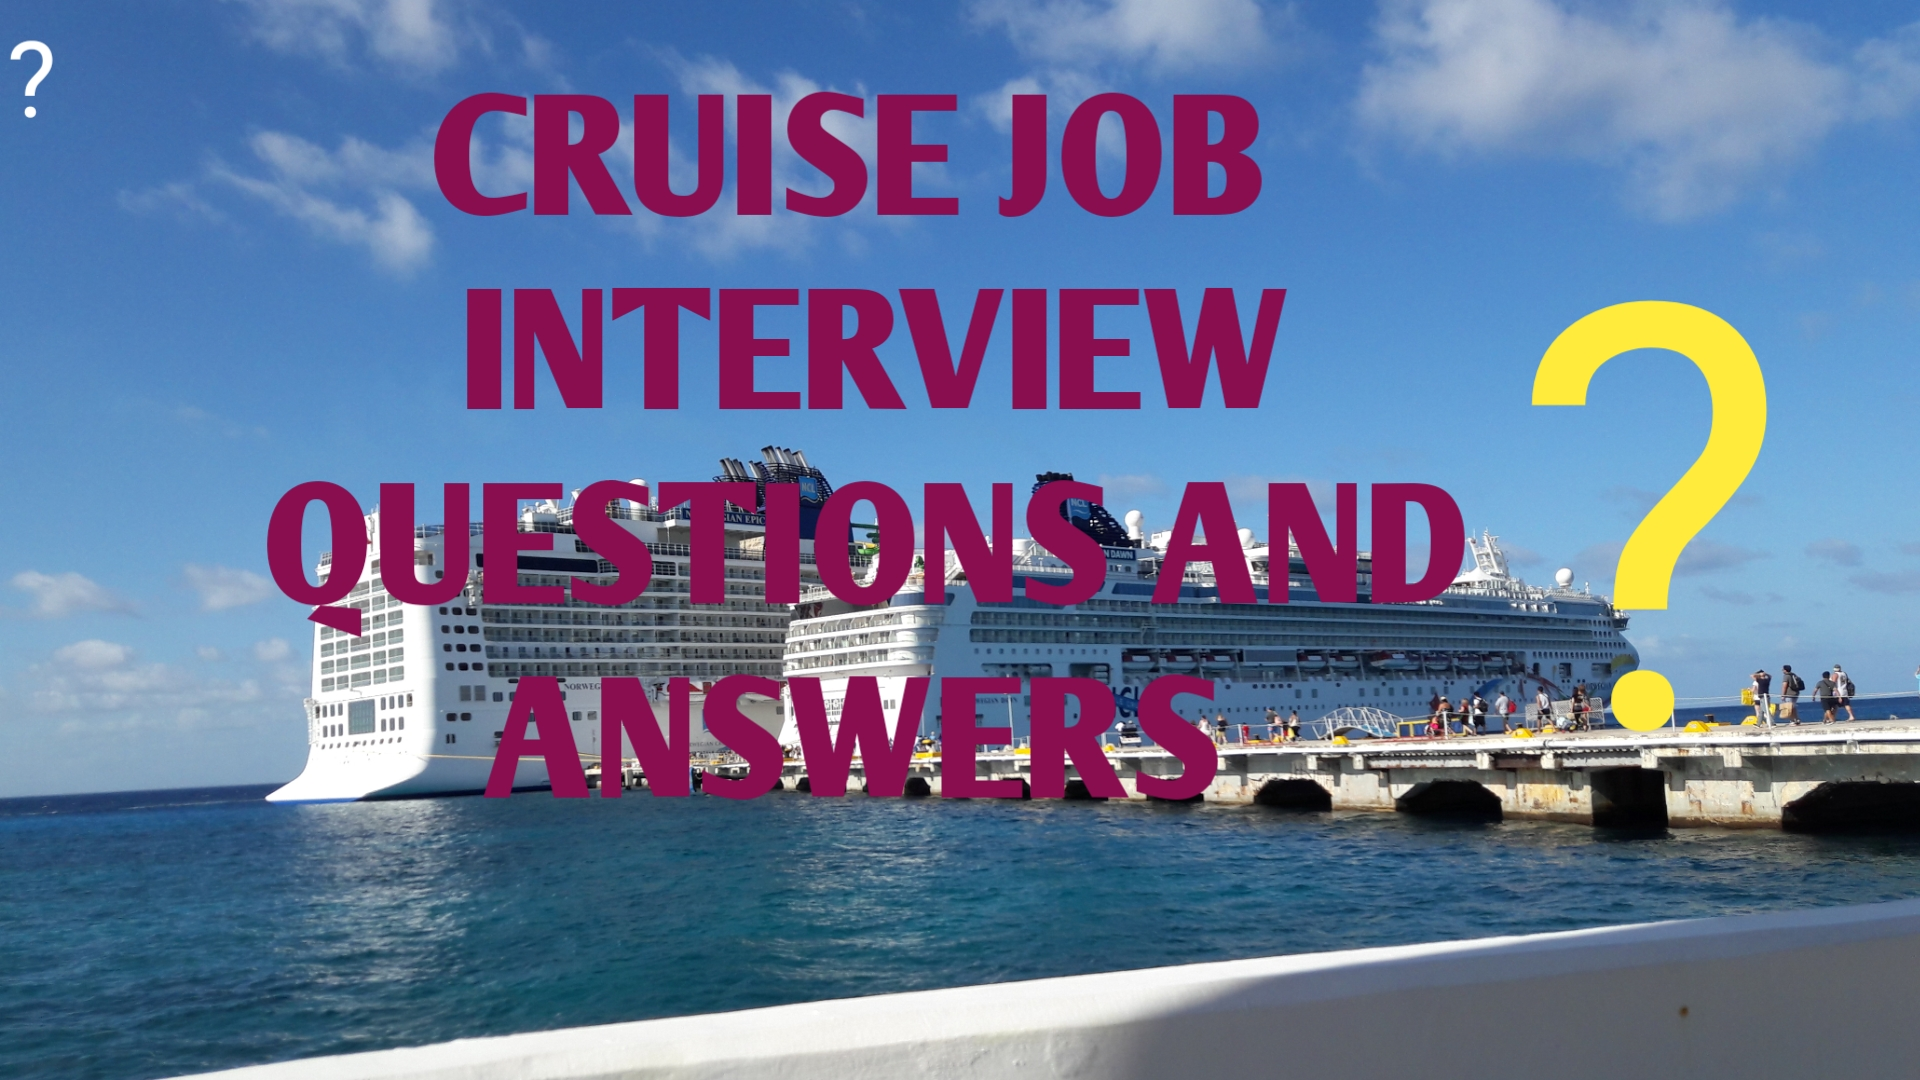 cruise job interview questions and answers